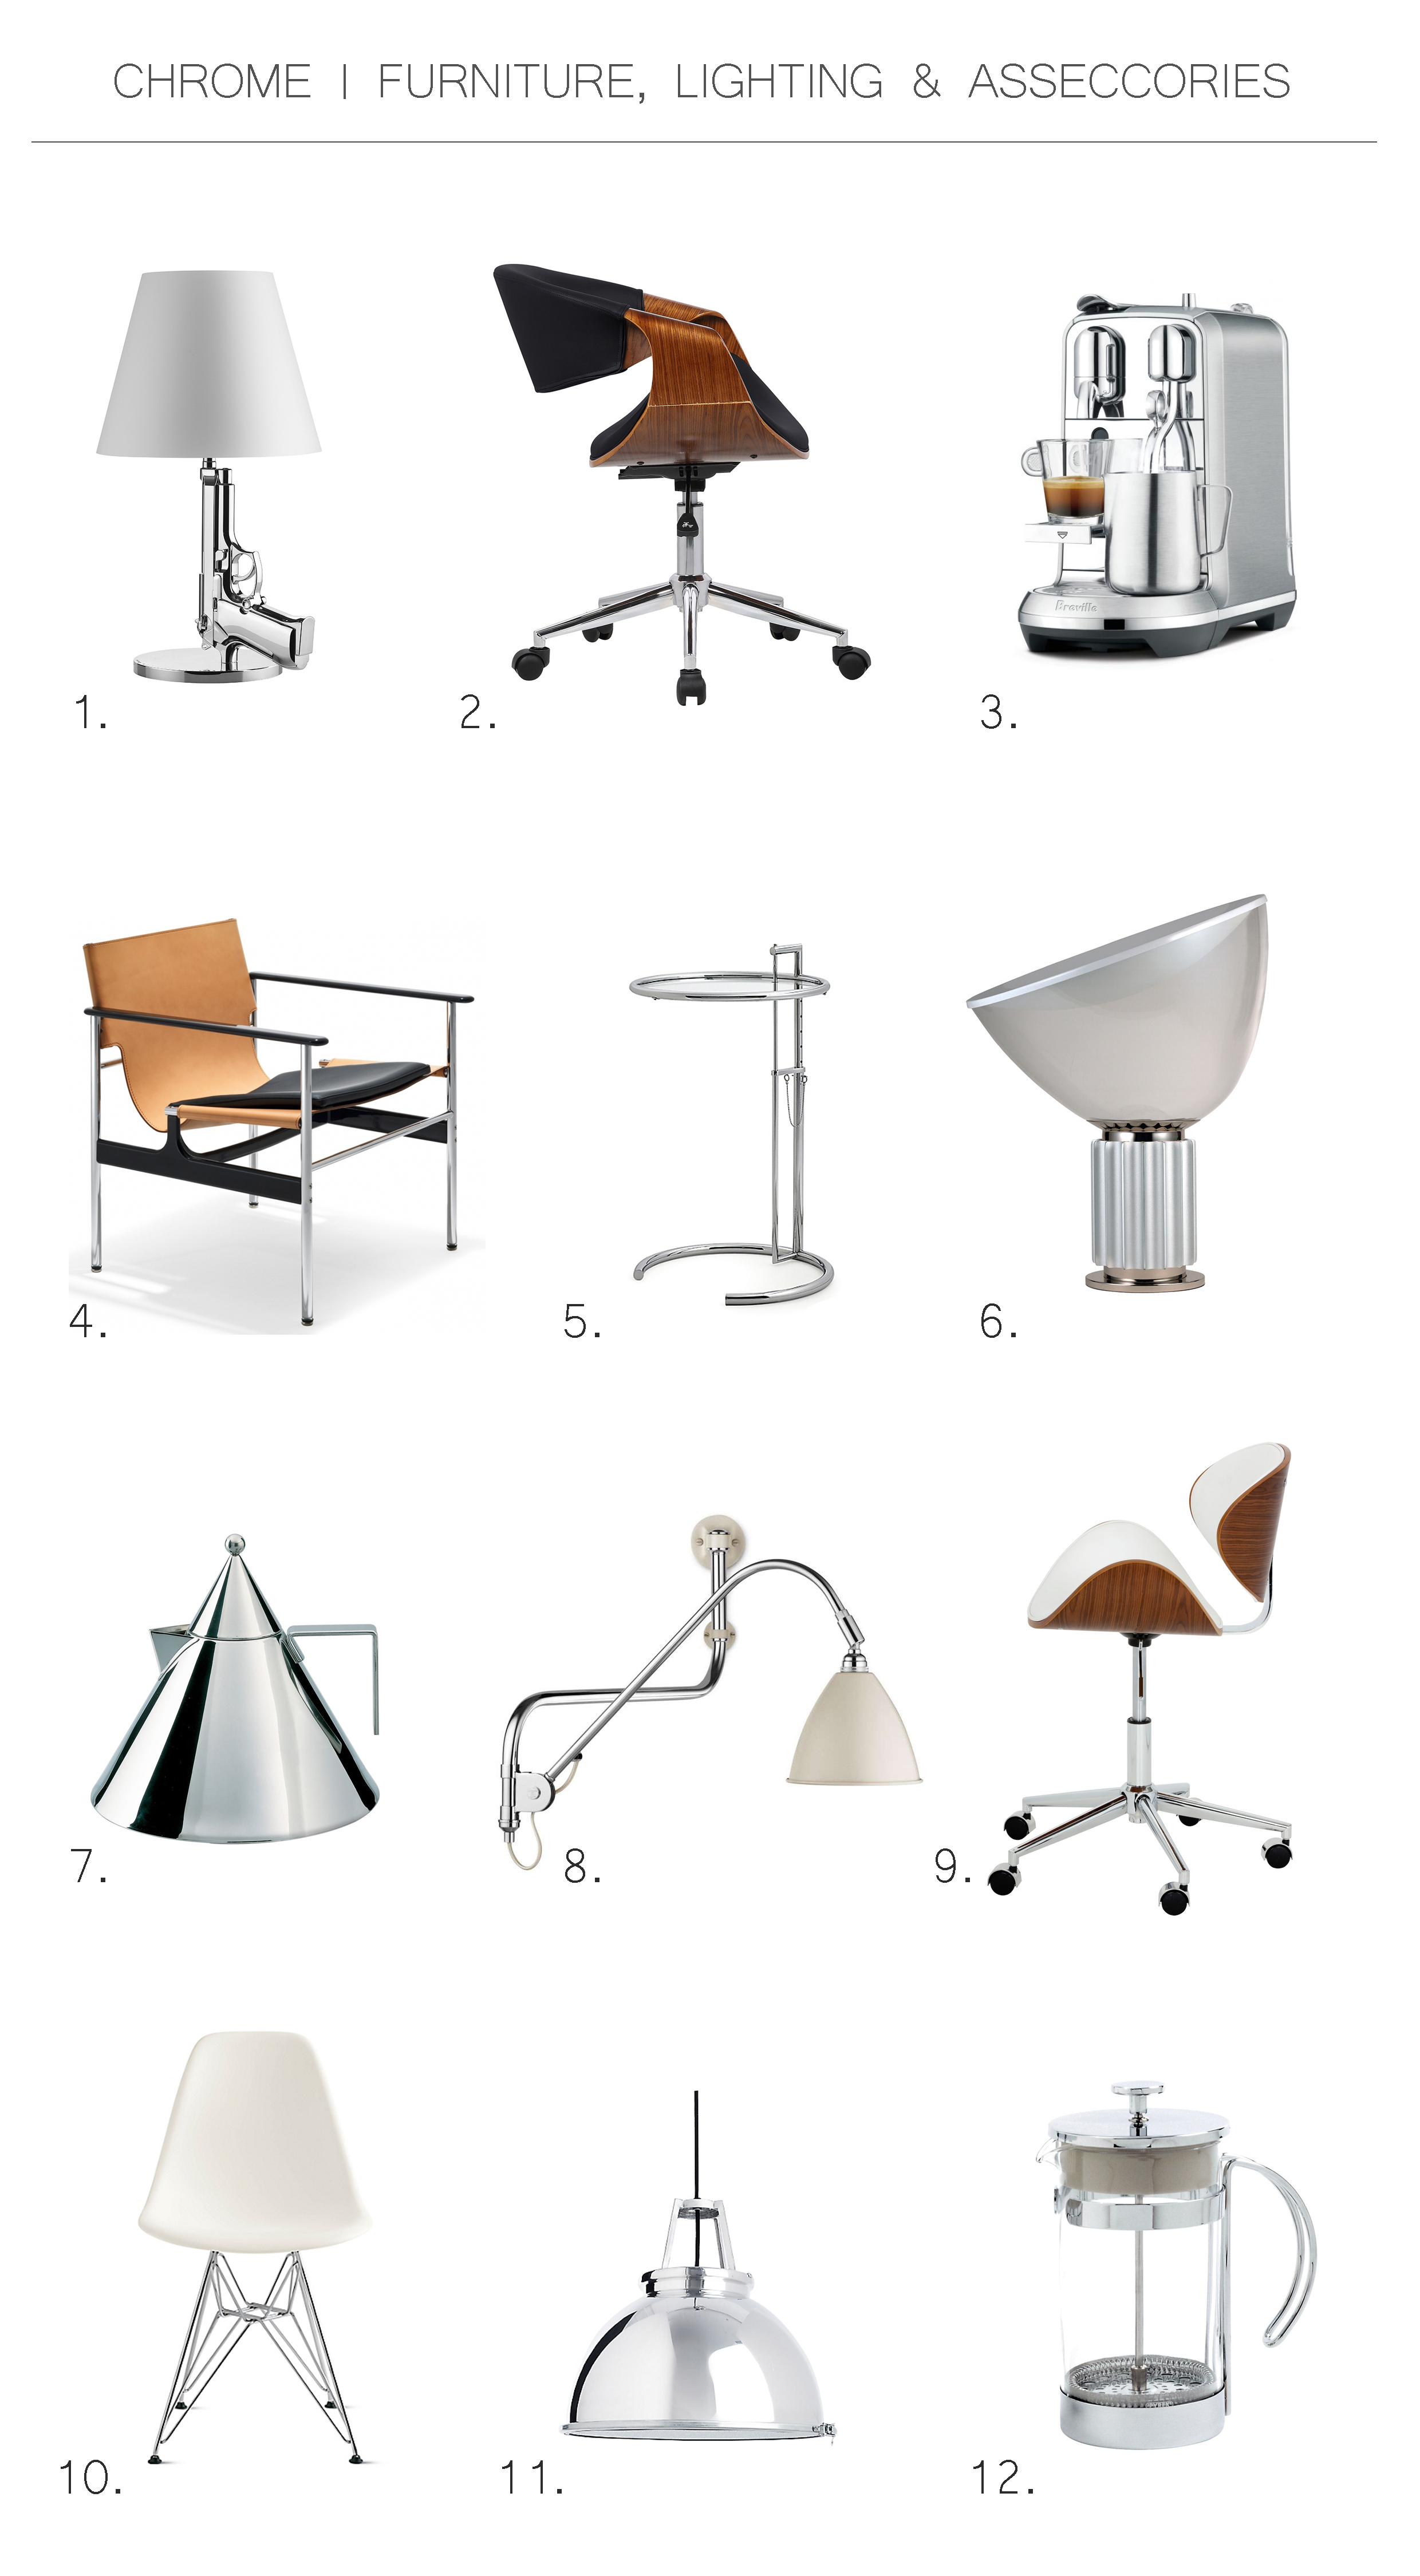 Chrome furniture, lighting fixtures and accessories